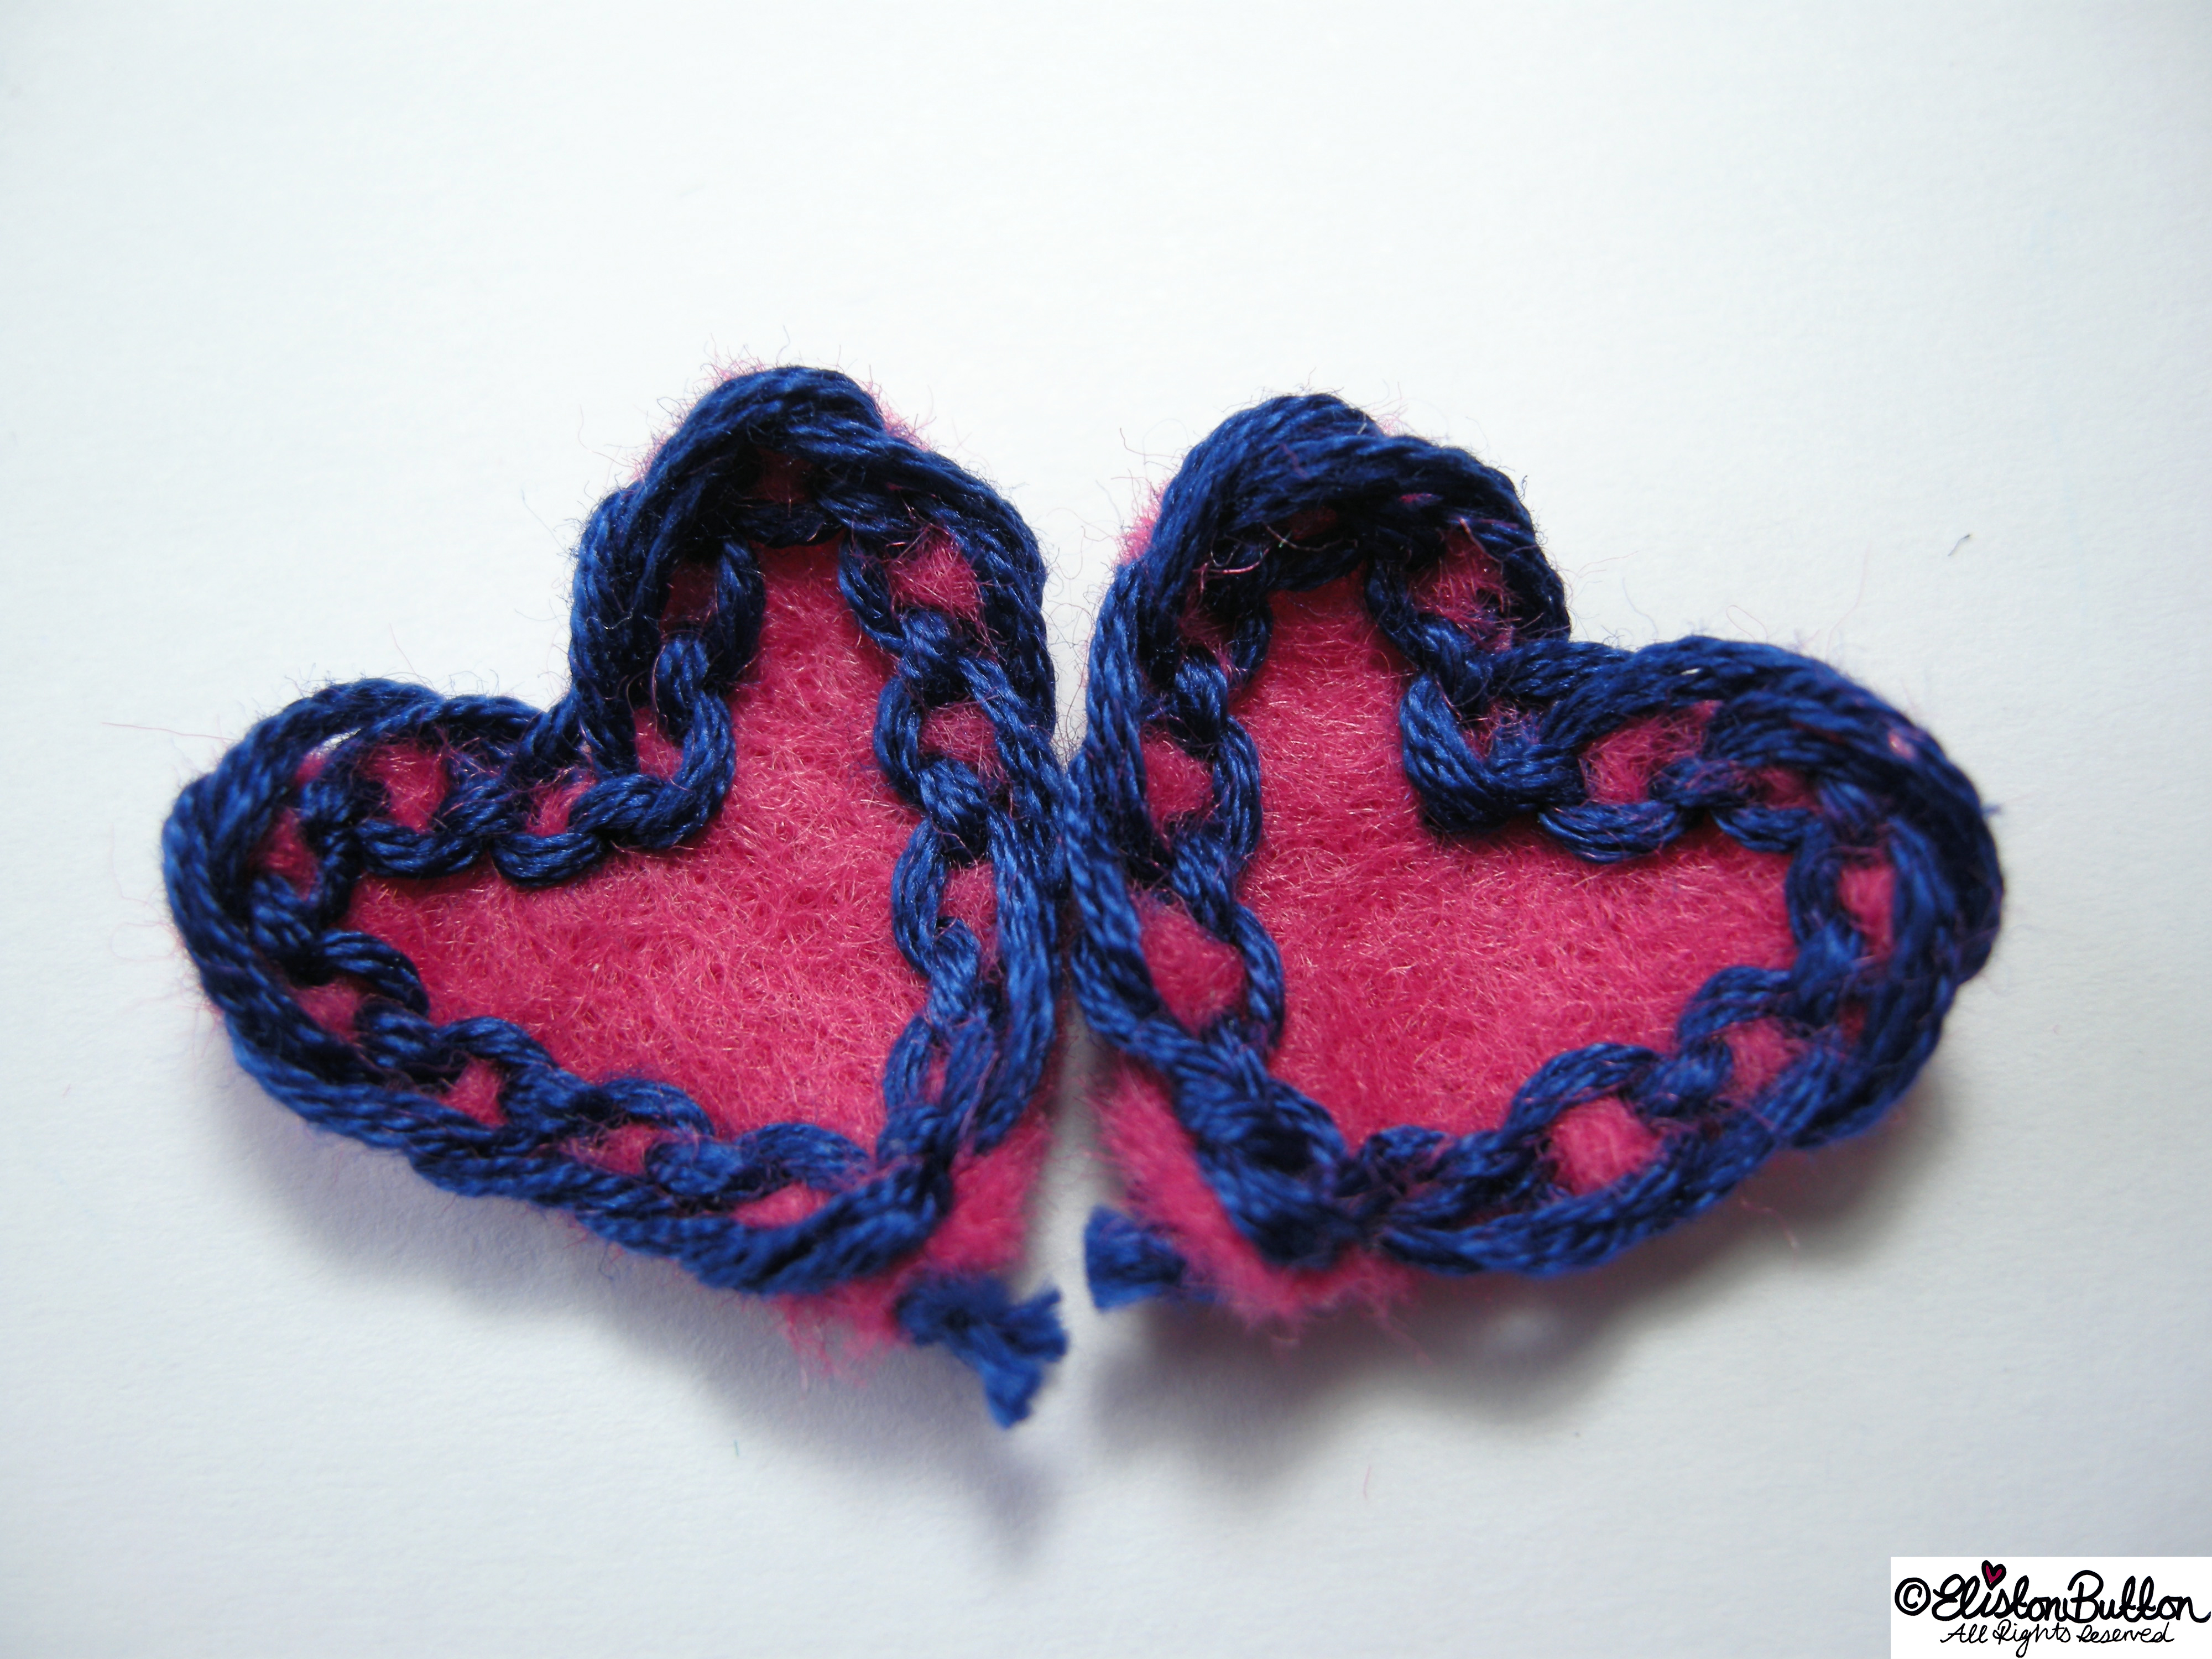 Tiny Pink Felt Heart Petals with Navy Blue Lace-Like Embroidery - 27 Before 27 - Pink Hearts at www.elistonbutton.com - Eliston Button - That Crafty Kid – Art, Design, Craft & Adventure.